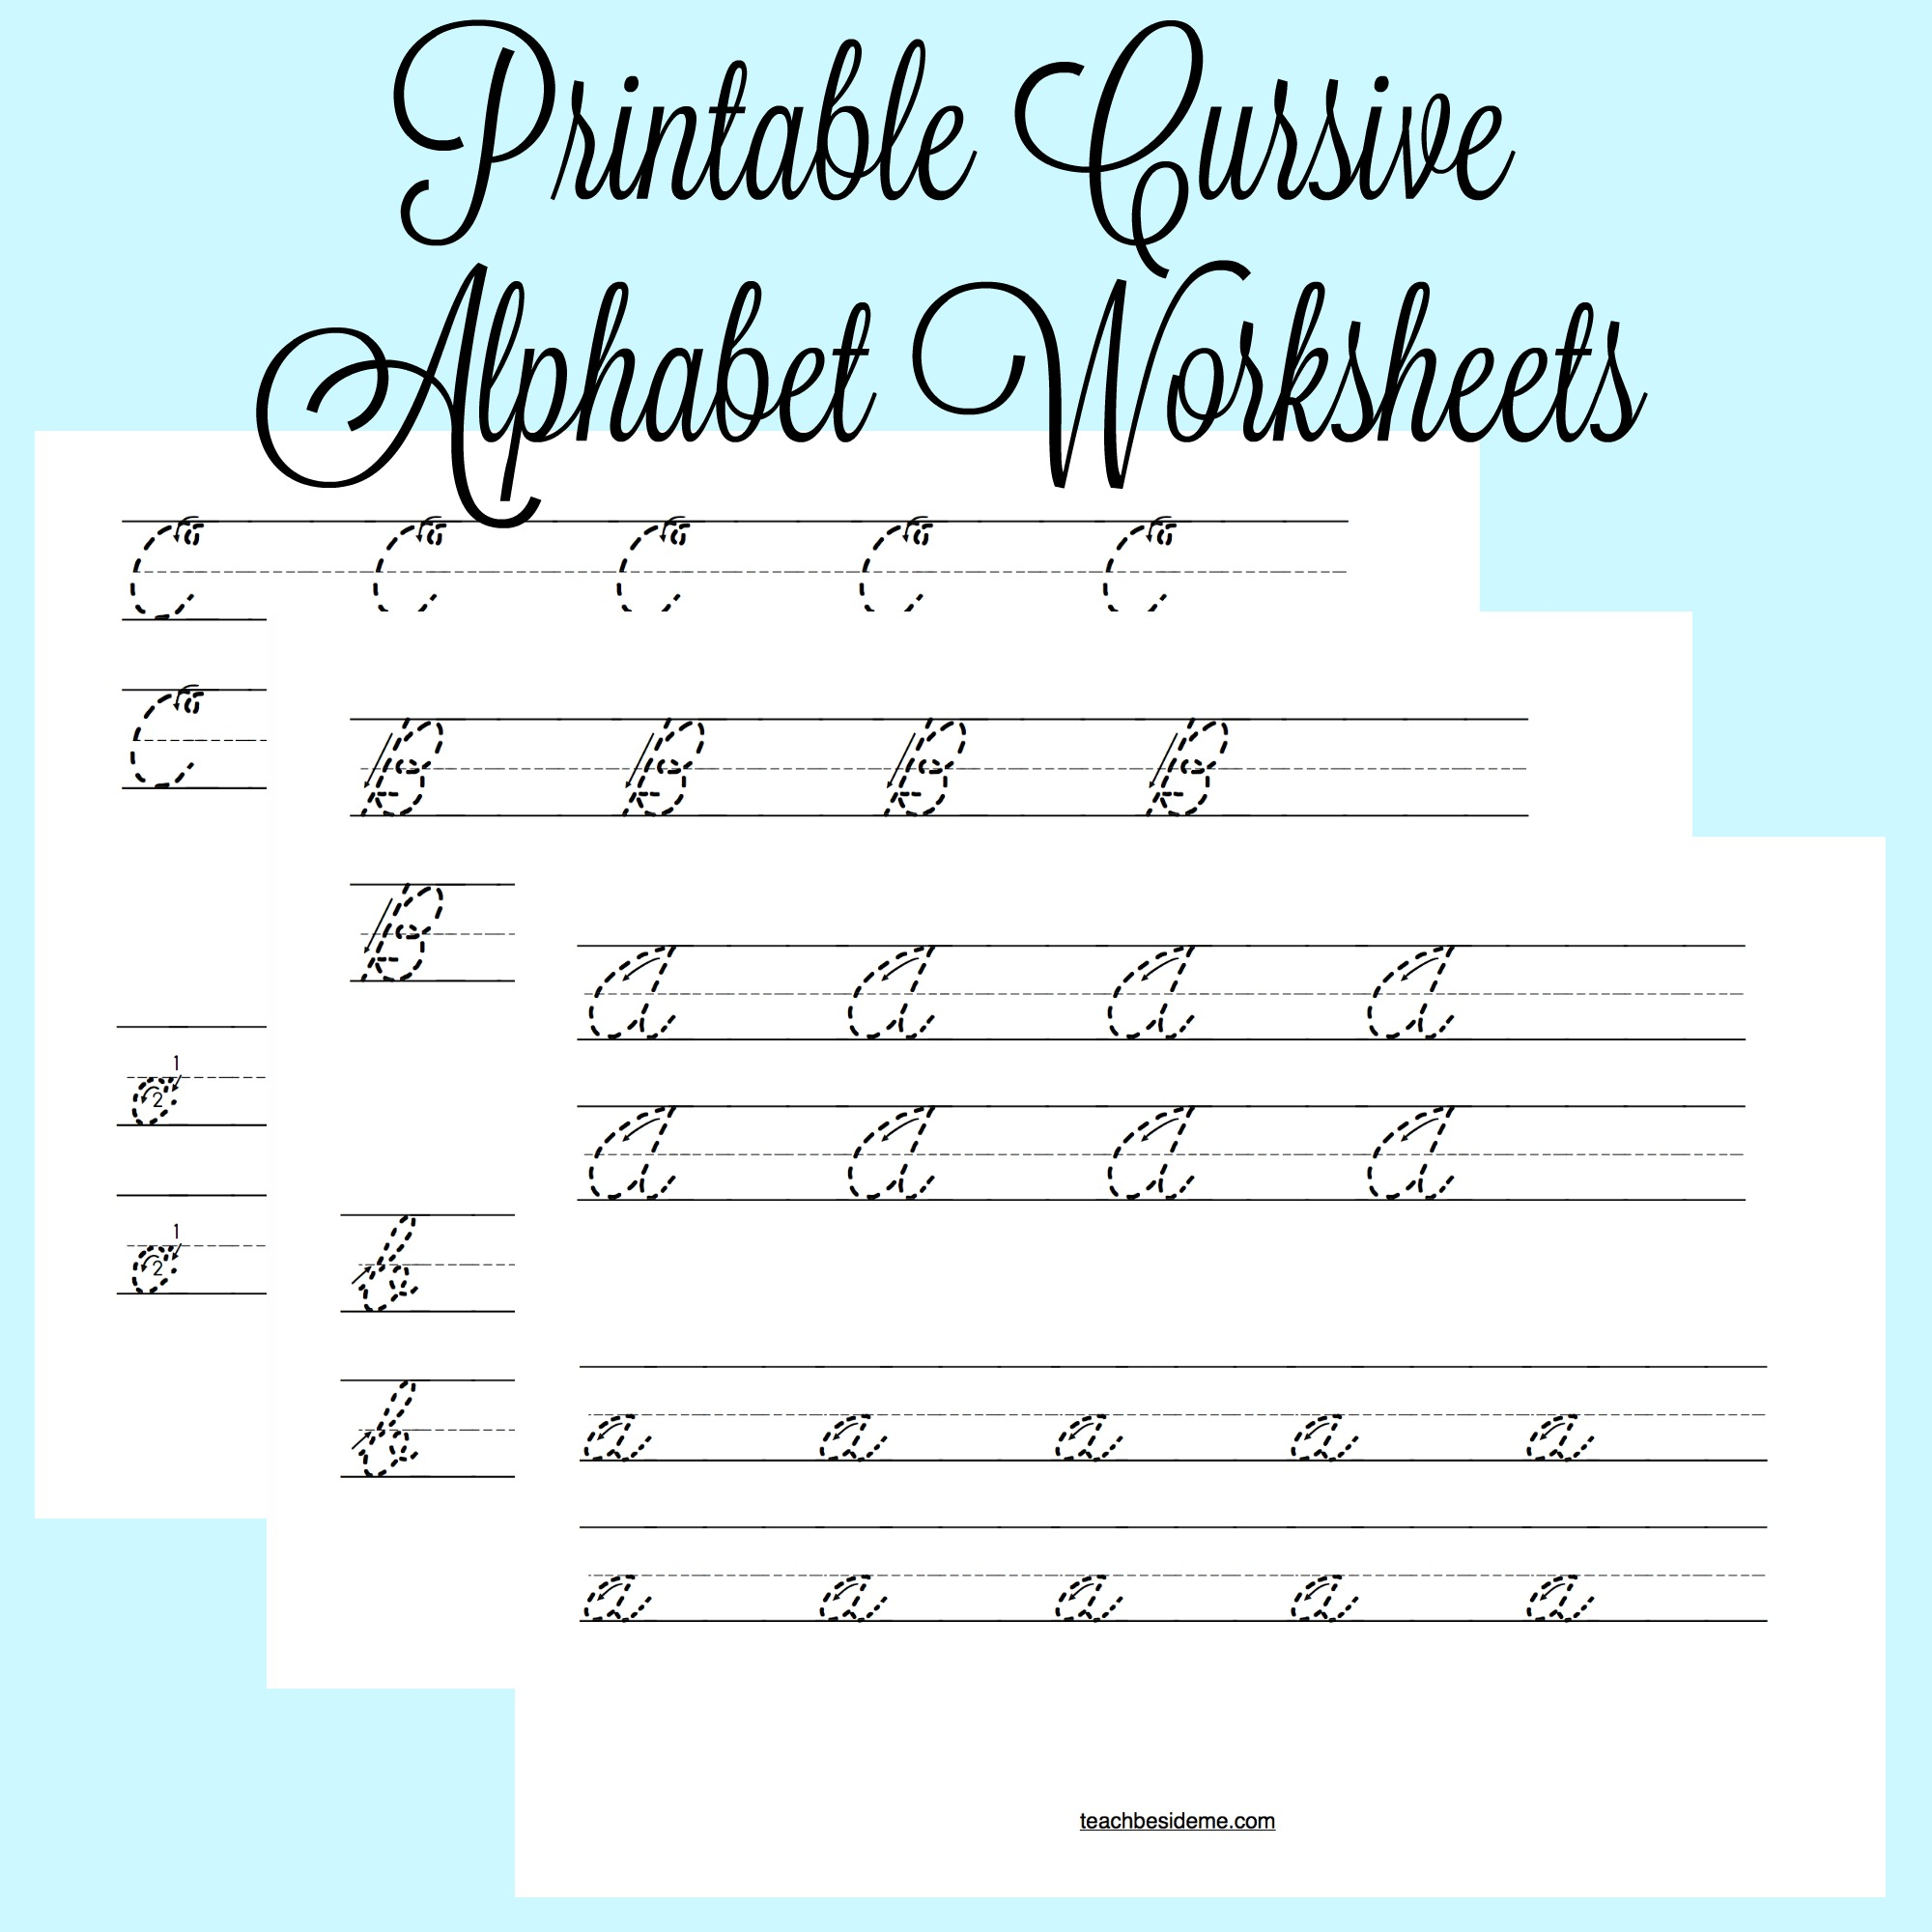 Worksheet Cursive Alhabet printable cursive alphabet worksheets teach beside me worksheets